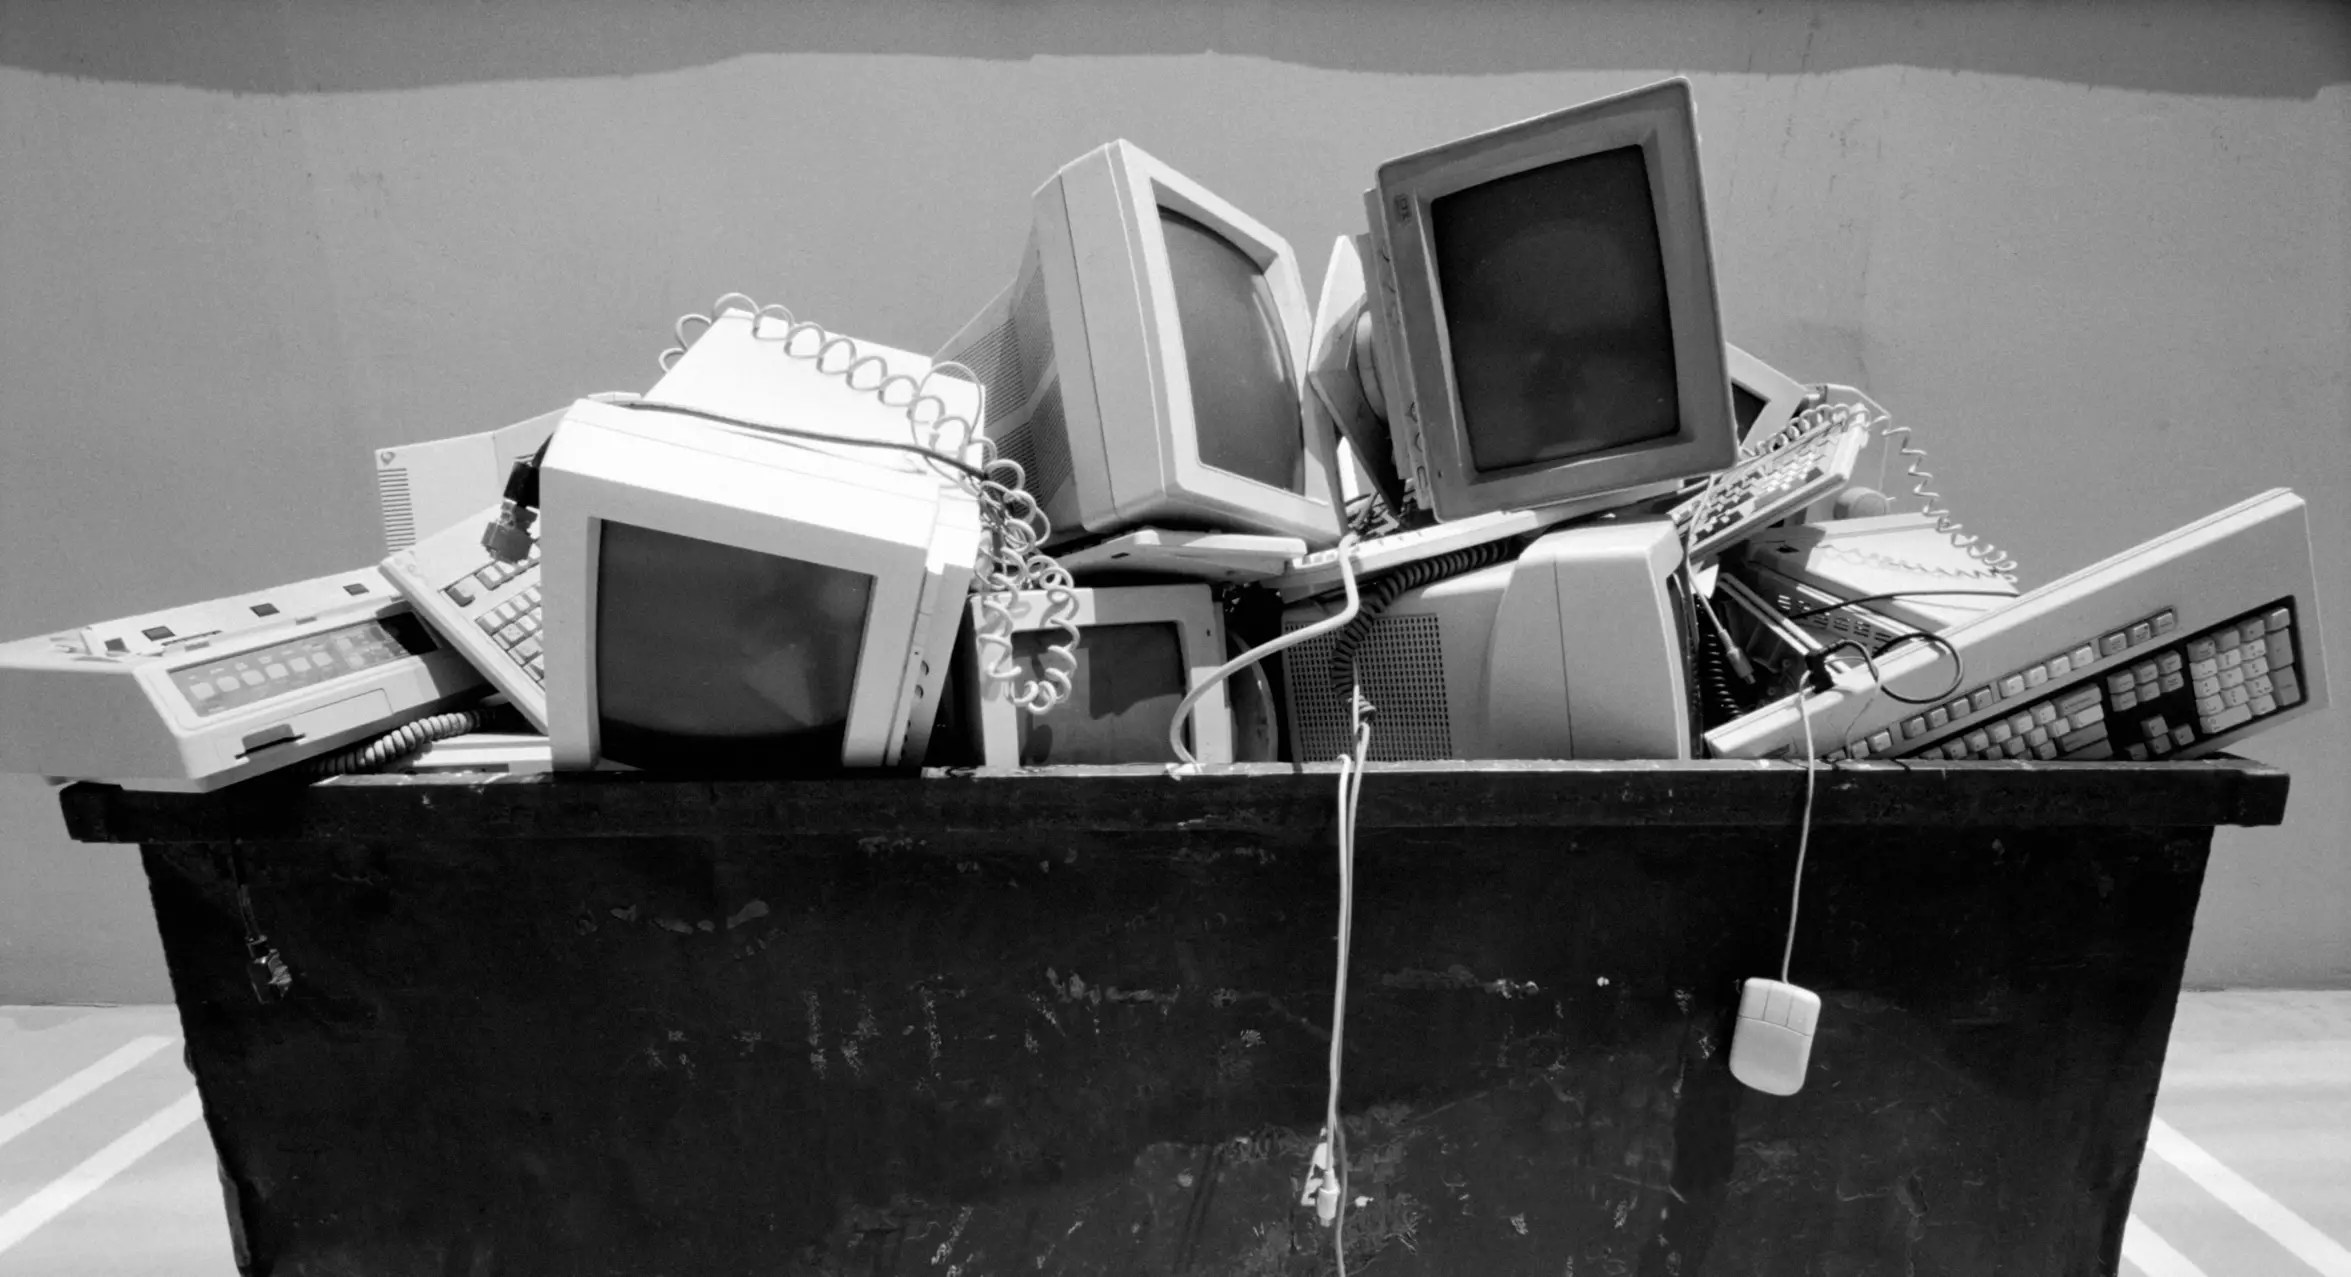 Photo of a garbage container full of old computer parts - The Internet Tips